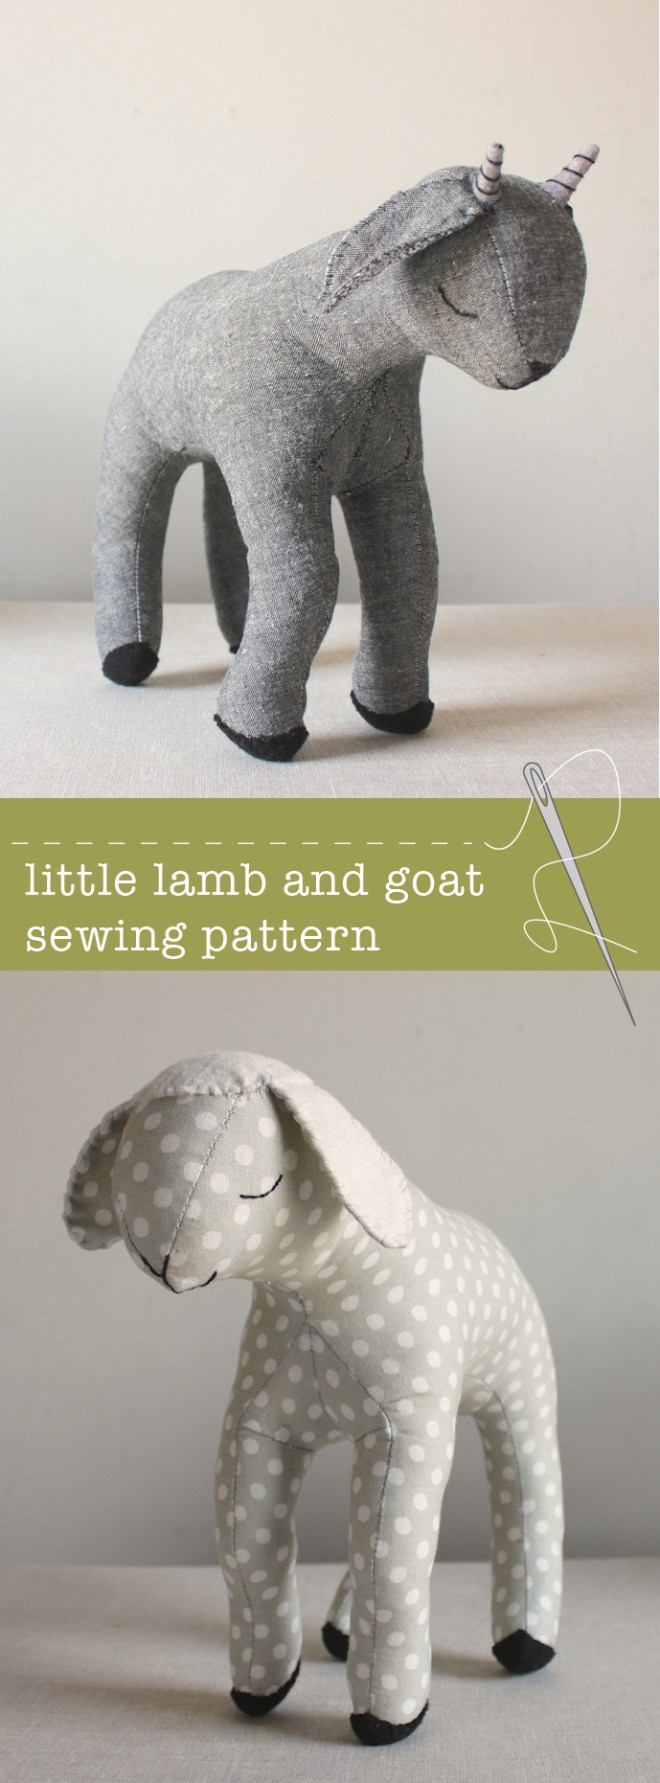 sewing pattern – Page 2 – ann wood handmade